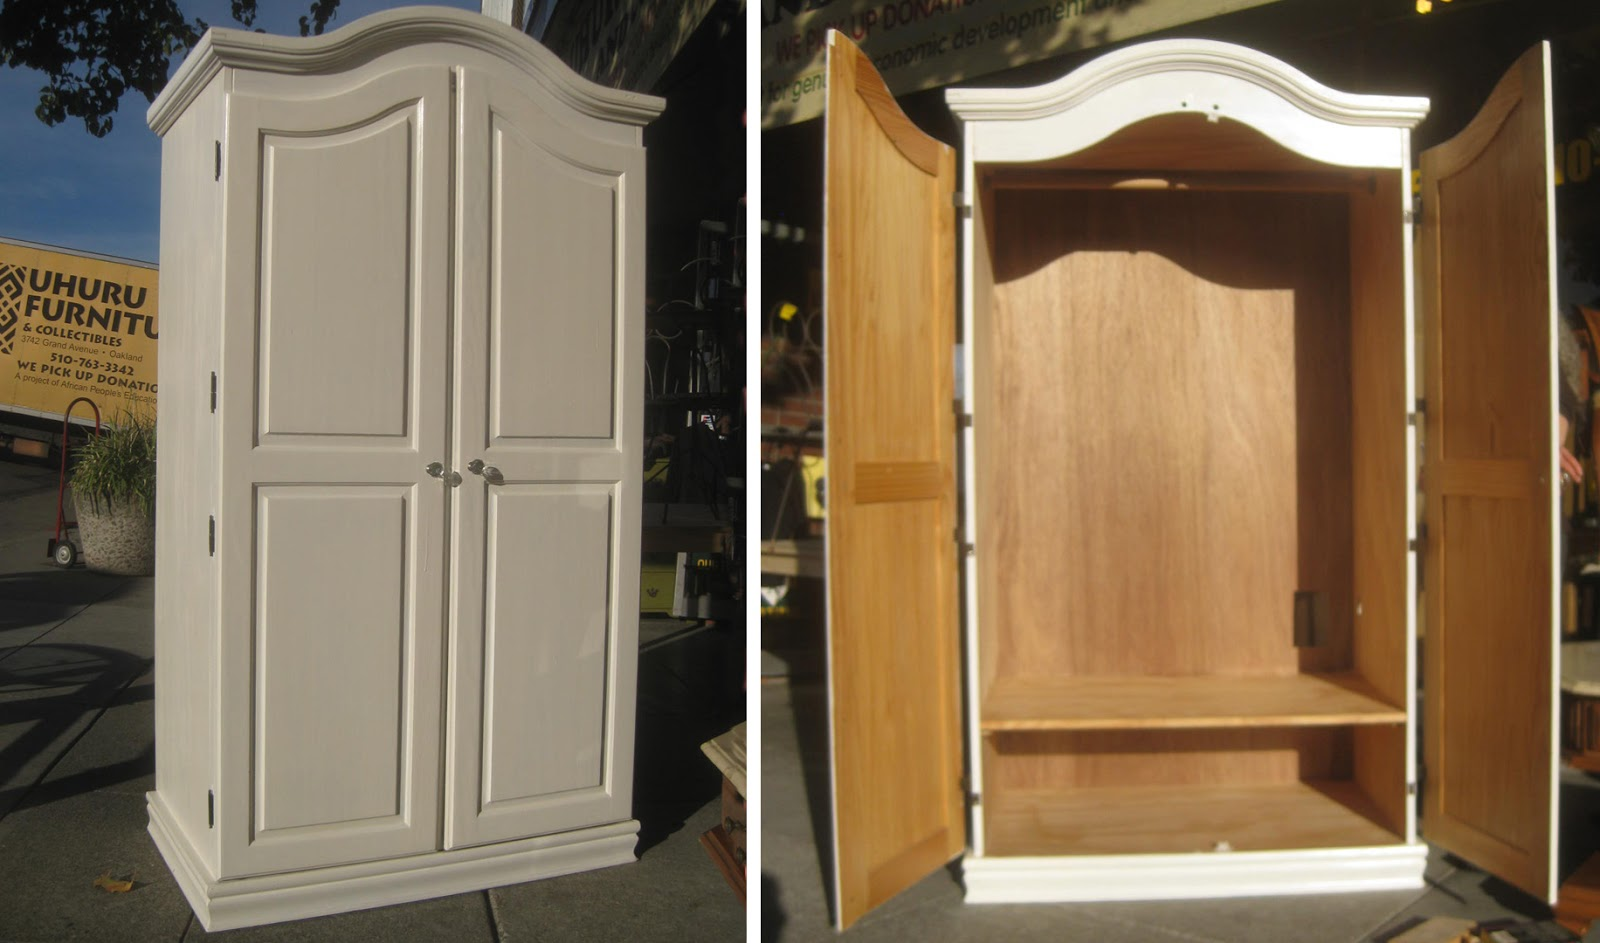 & COLLECTIBLES: SOLD Painted Wooden Clothing Armoire $100. Full resolution‎  portrait, nominally Width 1600 Height 943 pixels, portrait with #694322.